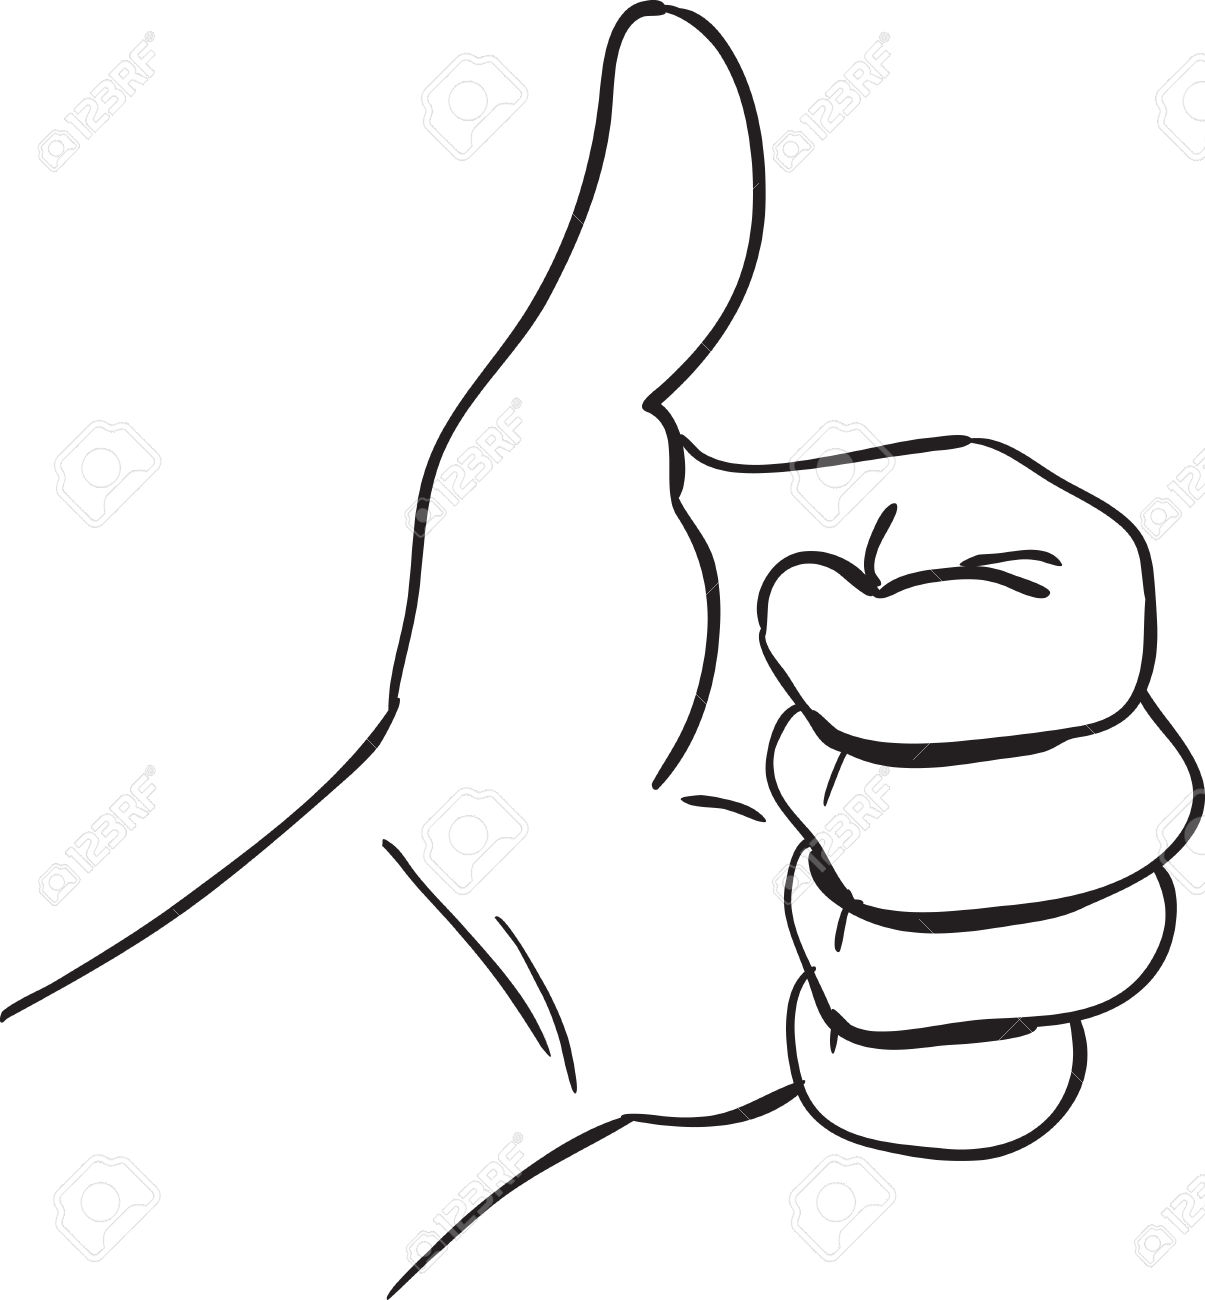 1205x1300 Simple Drawing Of A Hand Vector Illustration Of A Hand With Thumb